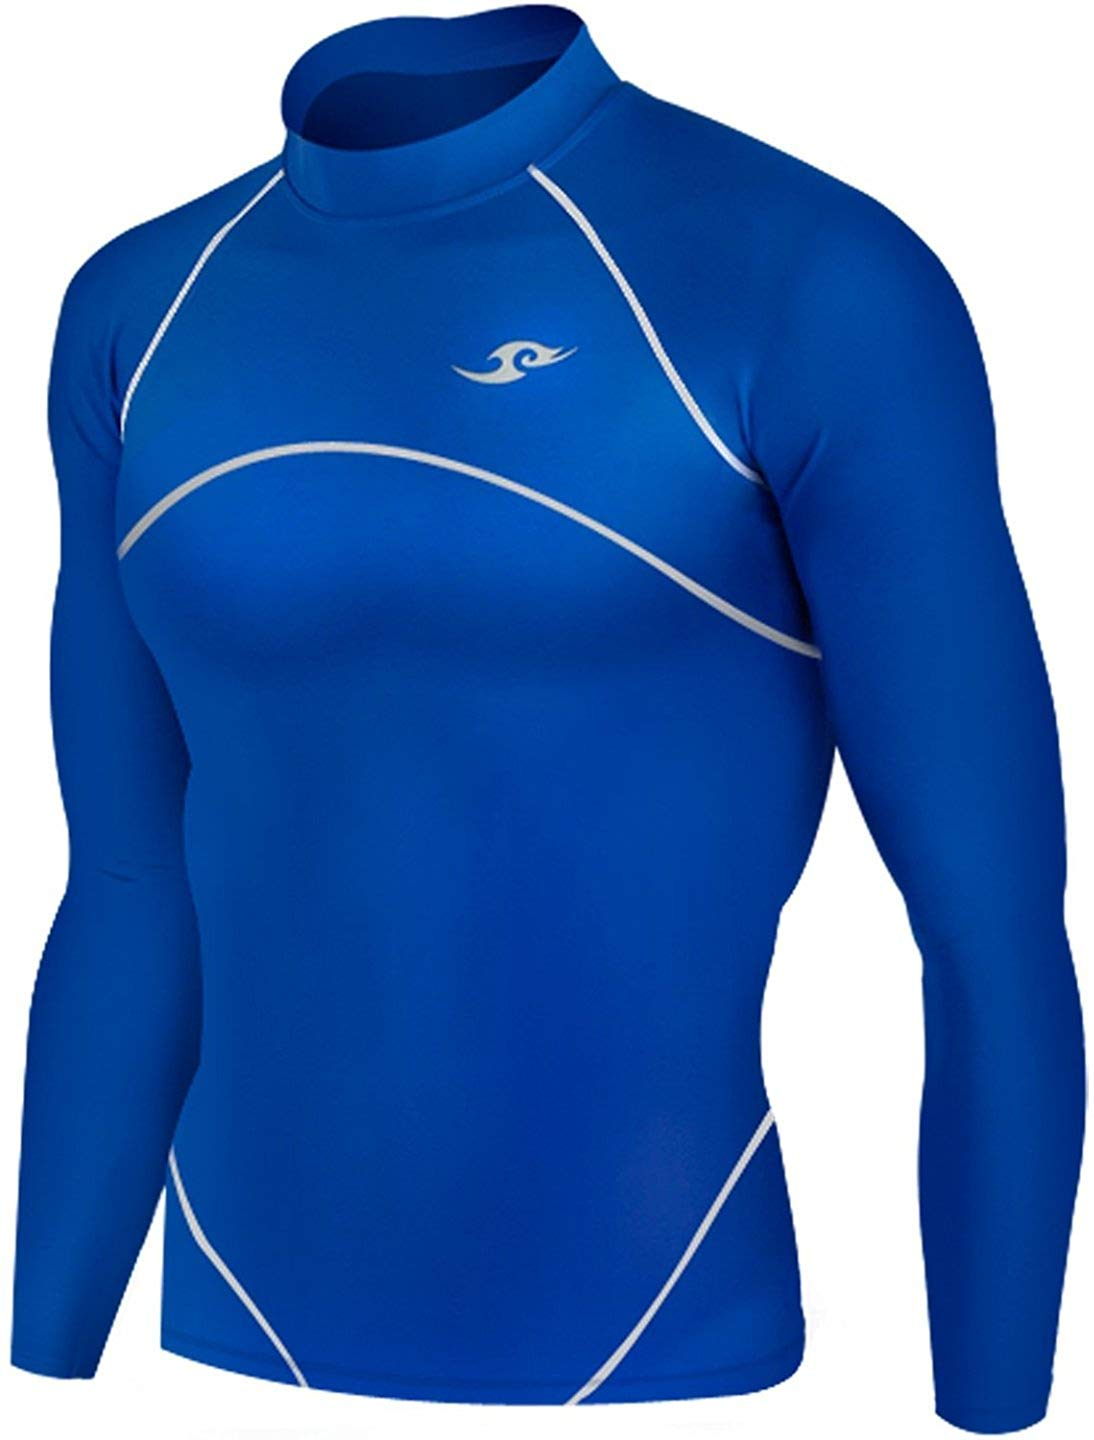 02796b367f Get Quotations · New 061 Winter Warm Skin Tight Compression Baselayer T  Shirt Top Mens Blue